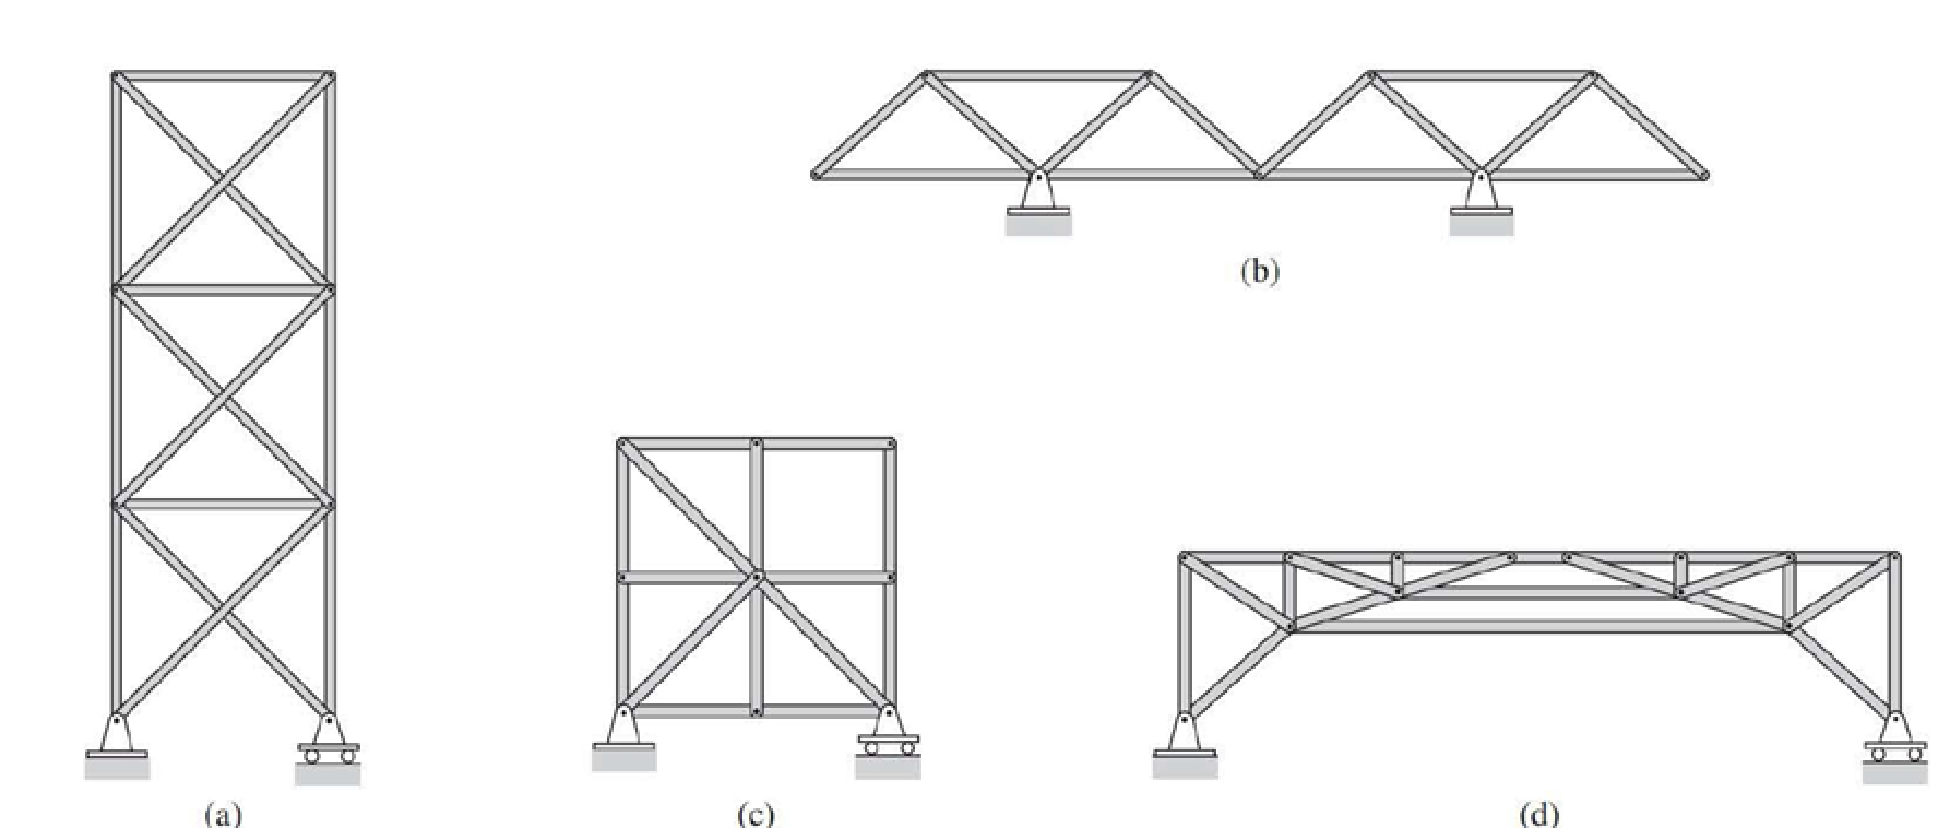 Chapter 4, Problem 4P, Classify each of the plane trusses shown as unstable, statically determine or statically